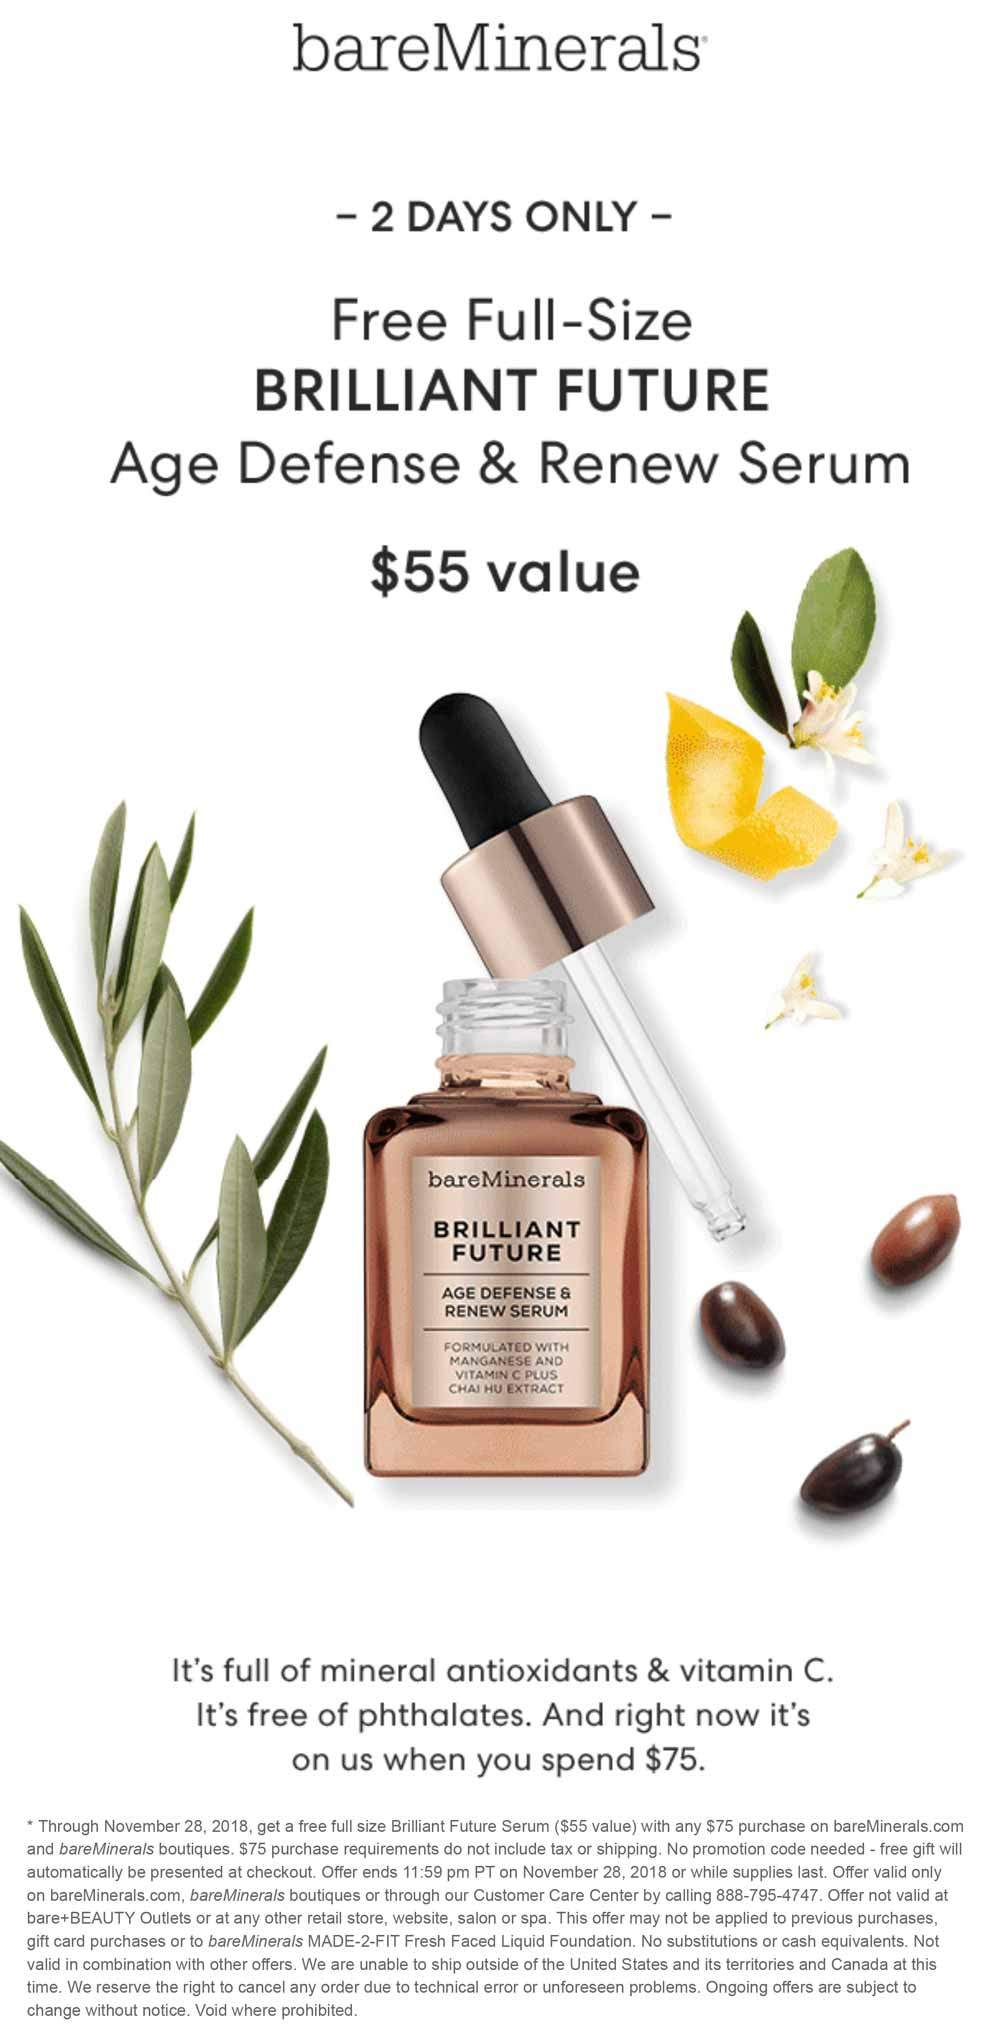 bareMinerals Coupon May 2019 $55 full size free with $75 spent today at bareMinerals, ditto online